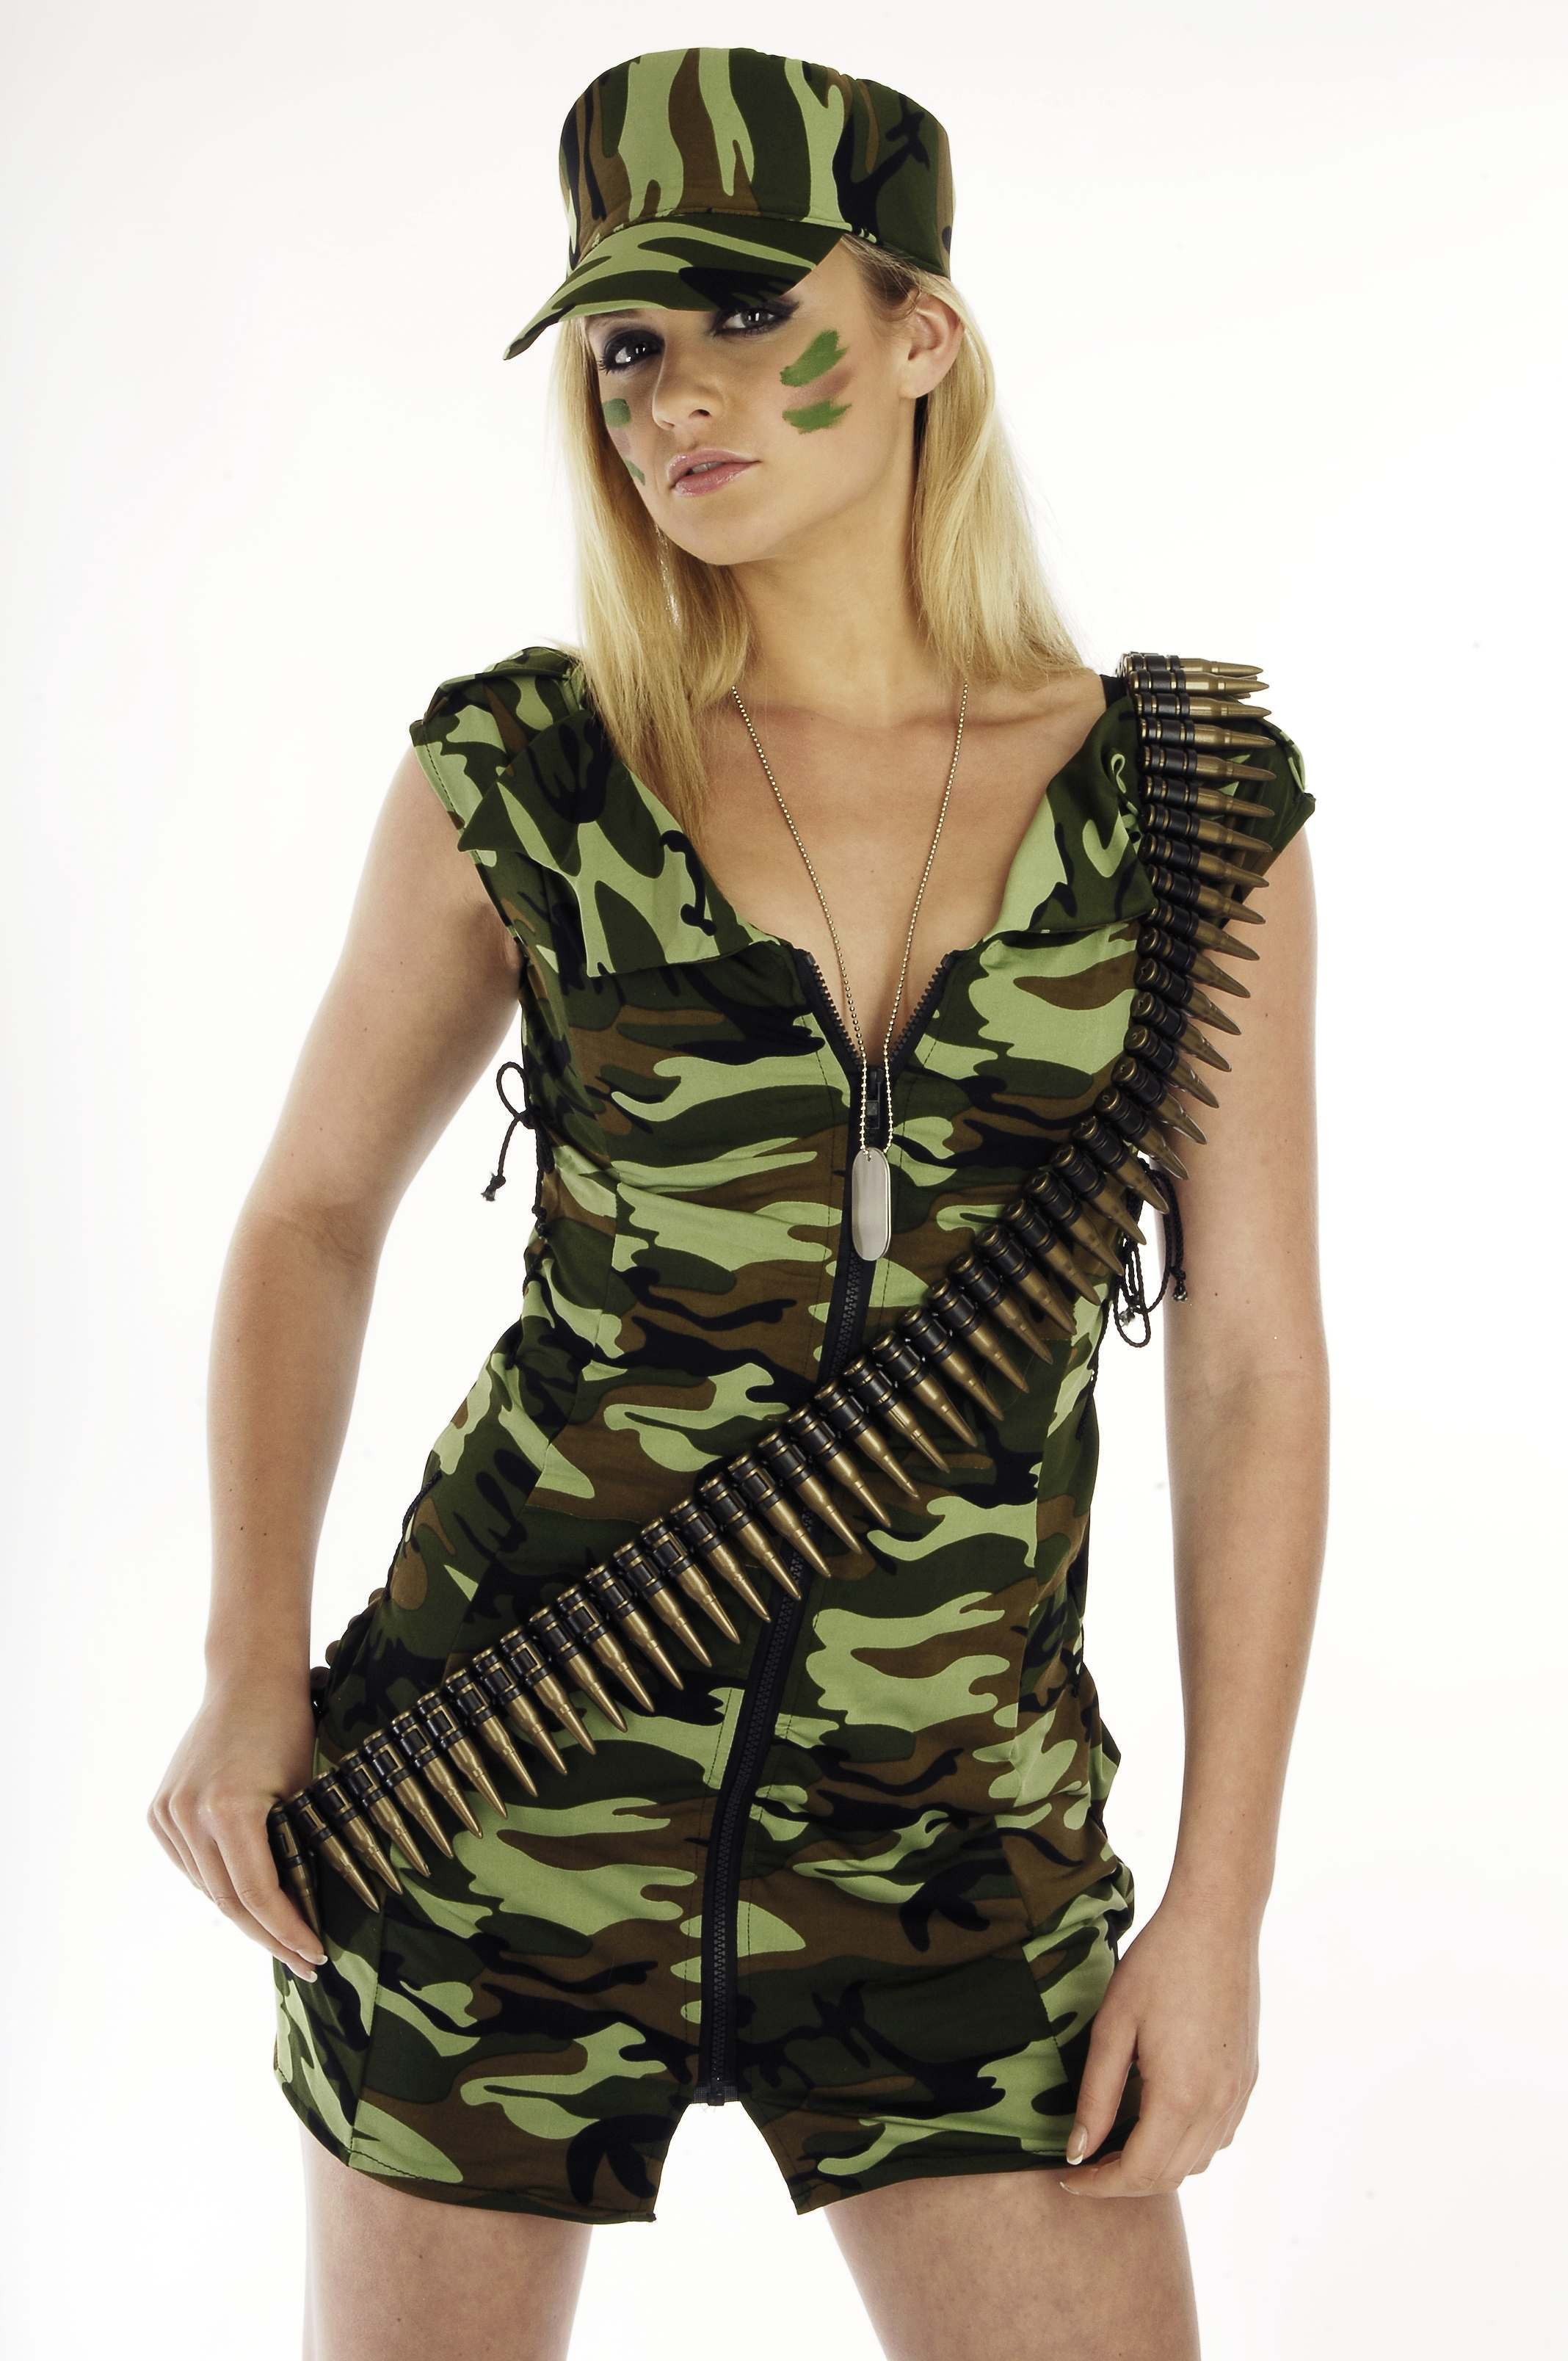 Ladies Army Girl Army Outfit - (Camo )